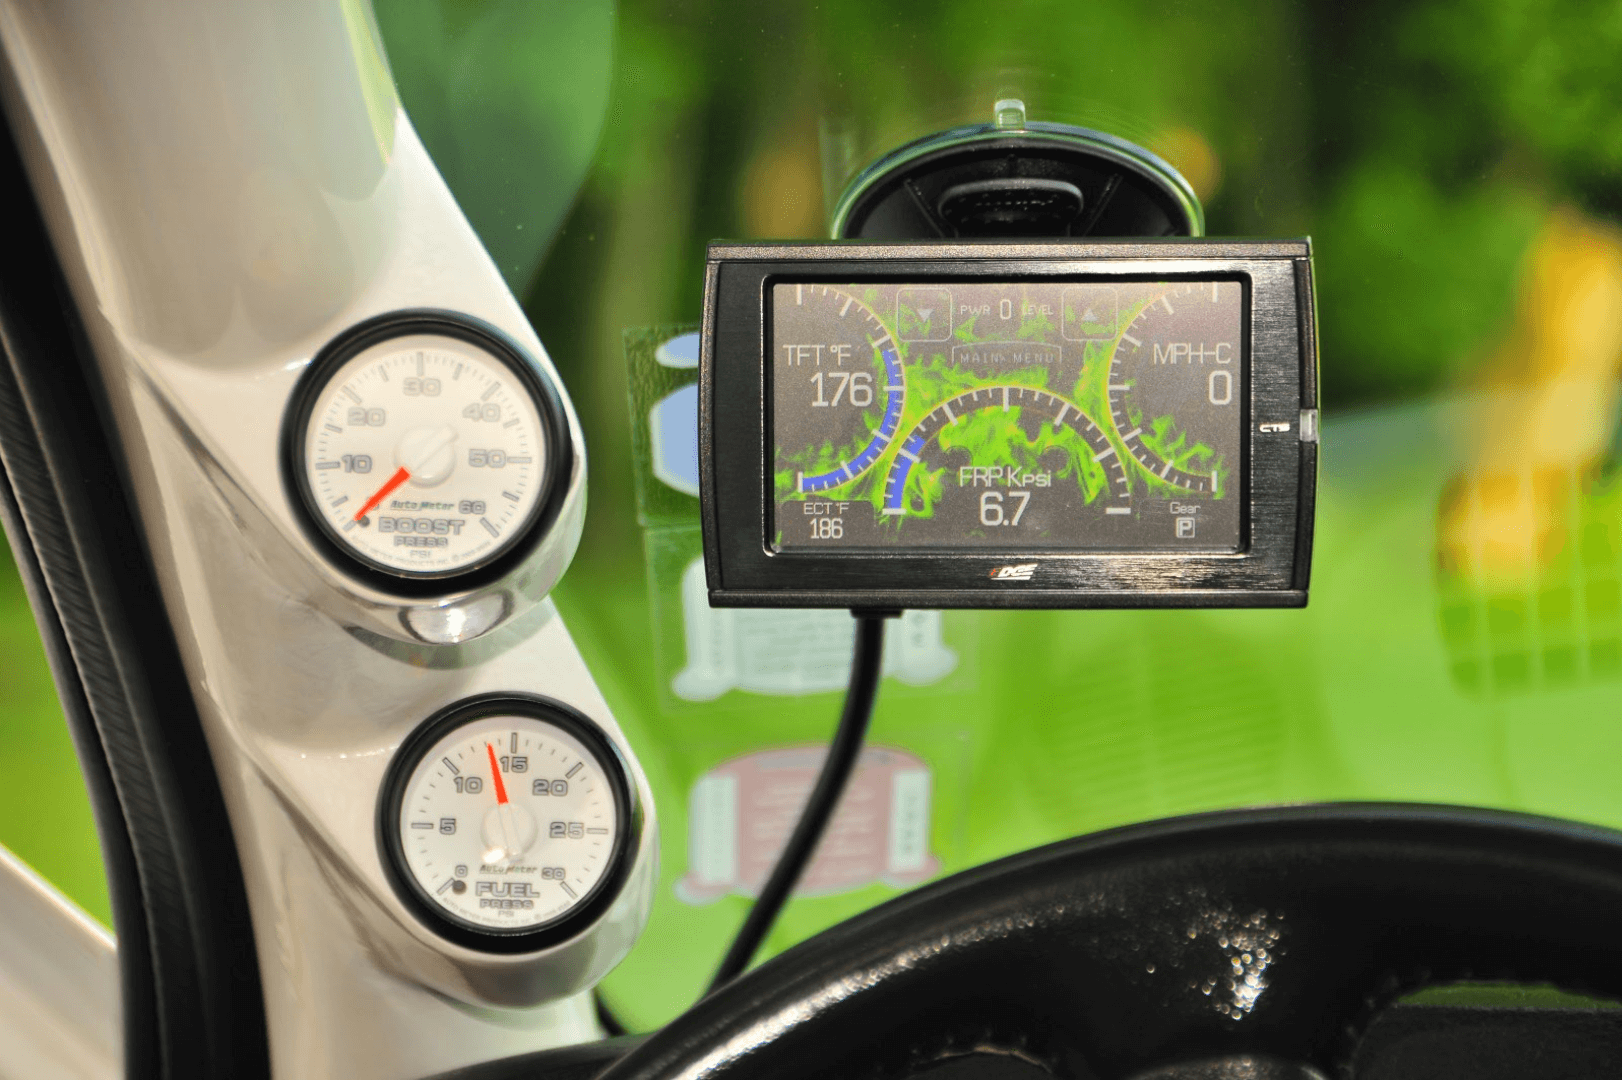 An Edge CTS monitors vital functions, as do the Auto Meter gauges on the A-pillar. A Smarty S-06 pod controls everything.